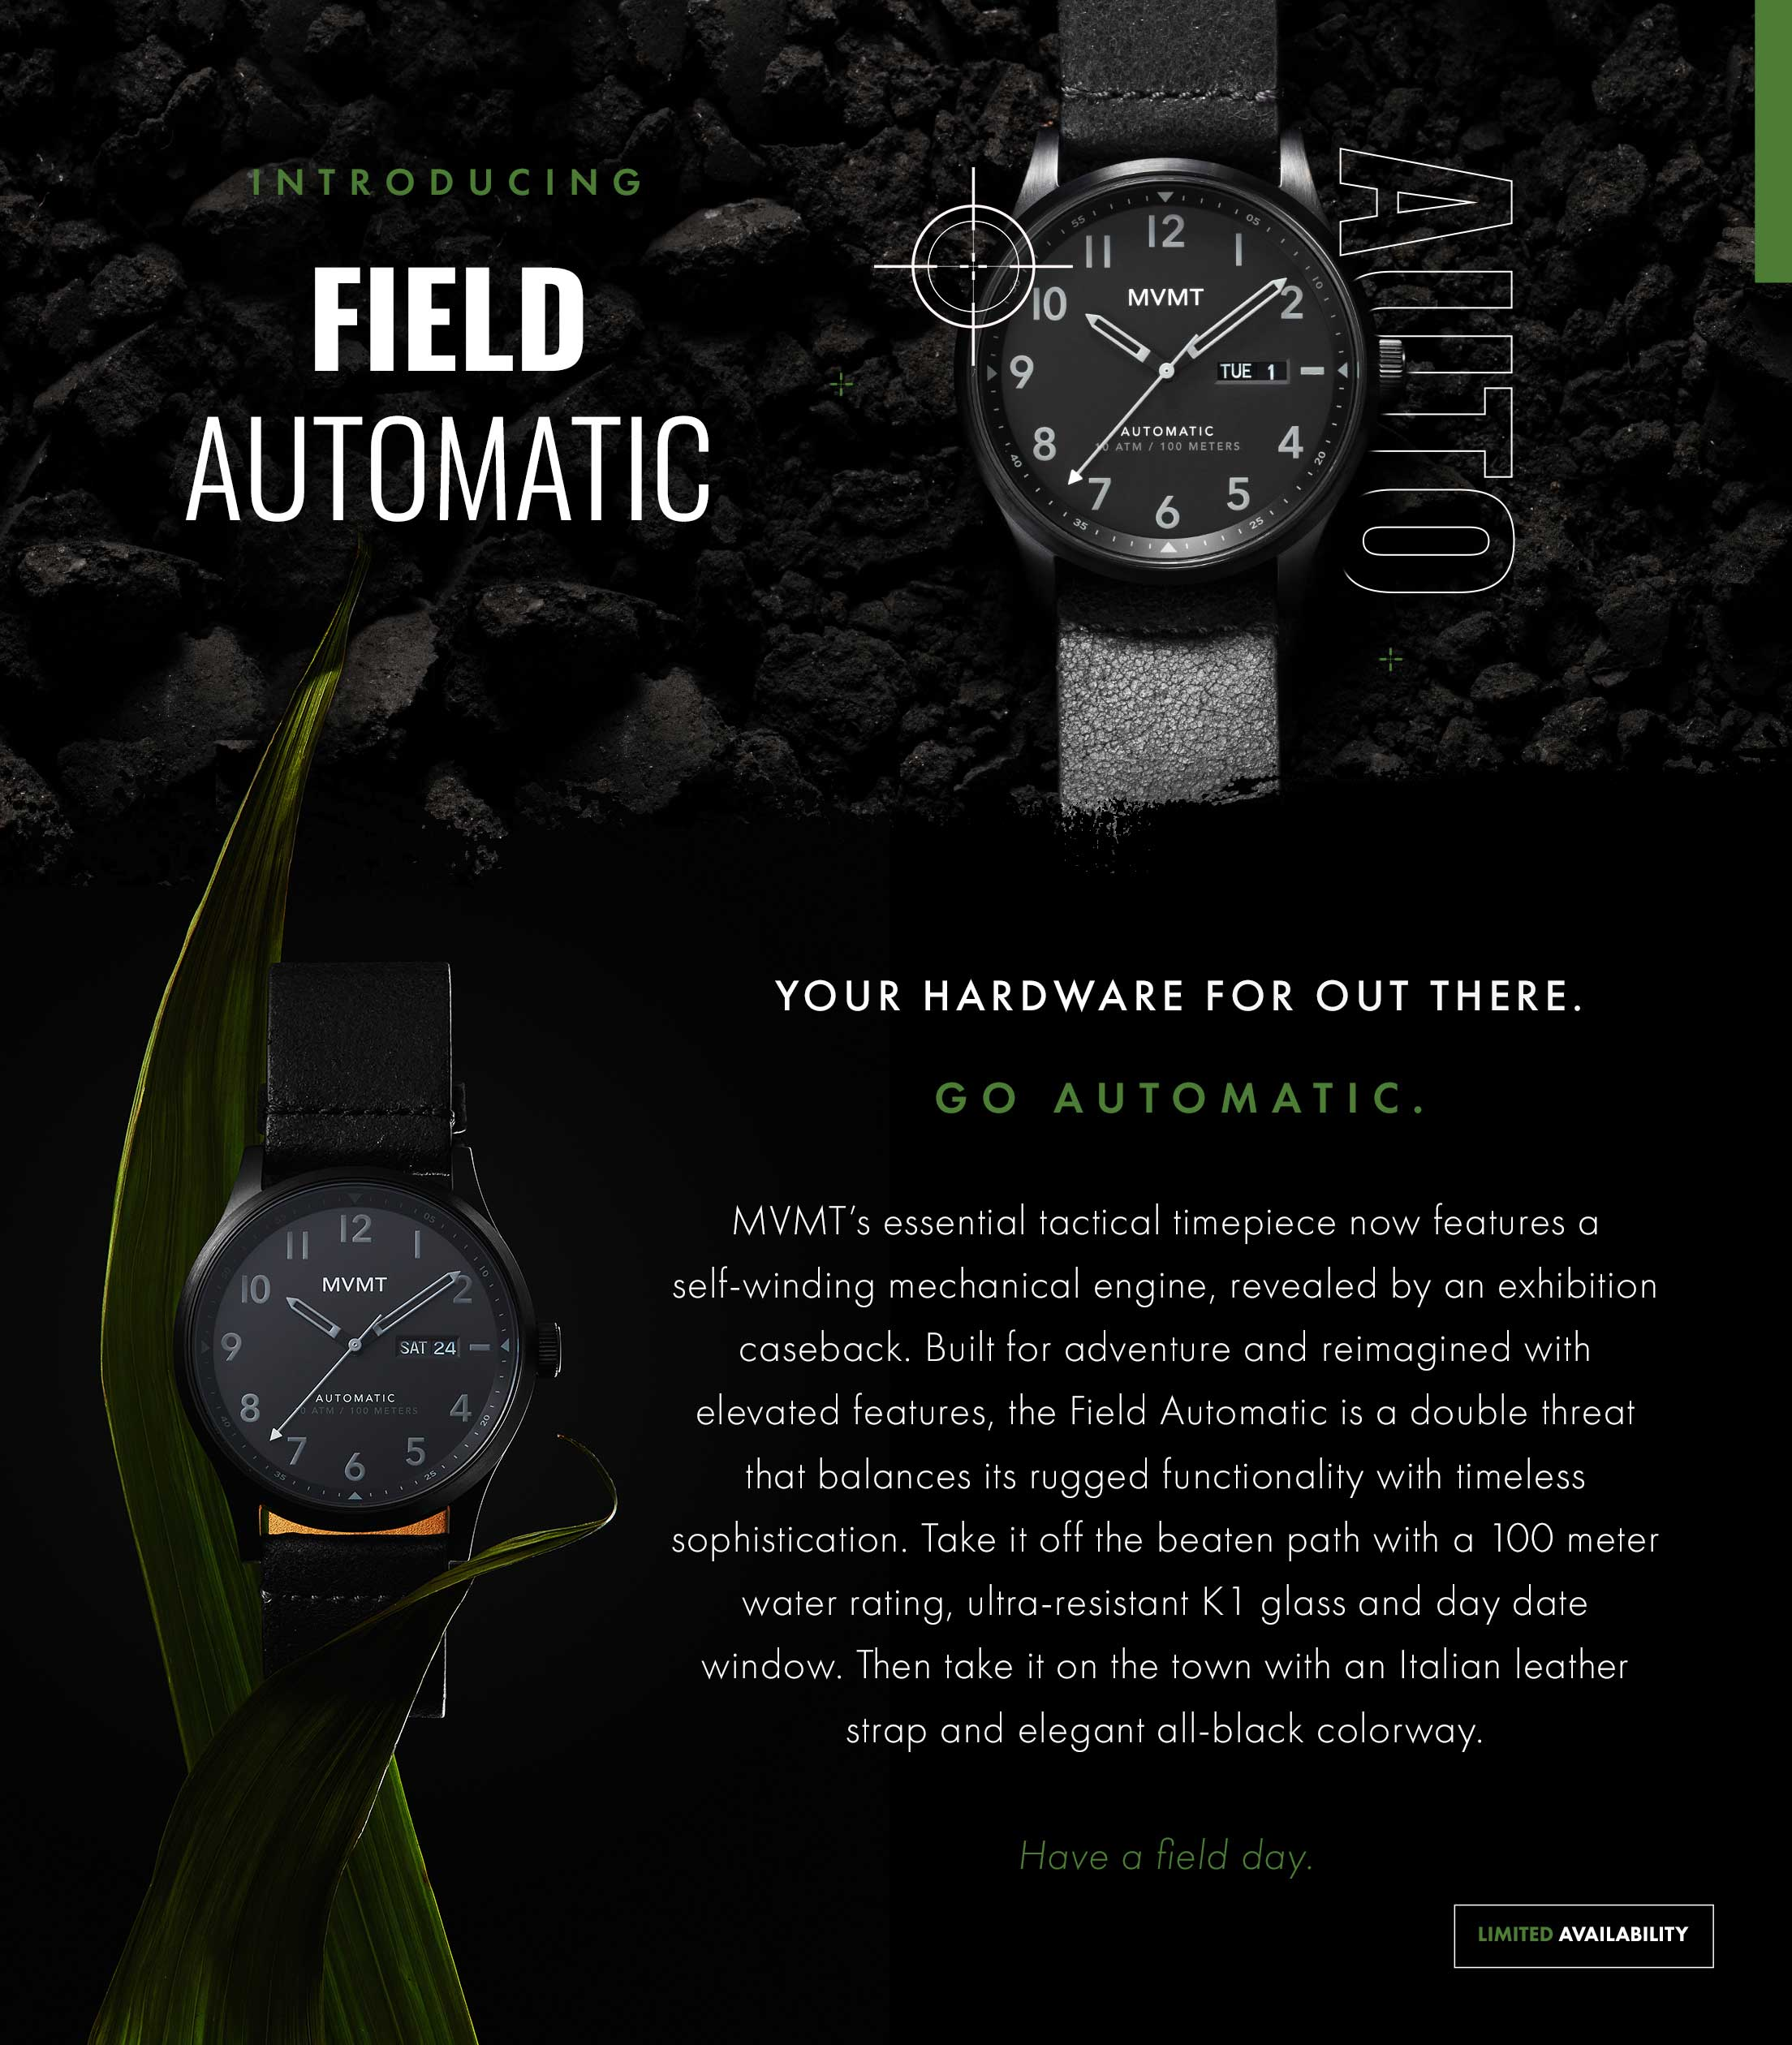 Introducing Field Automatic